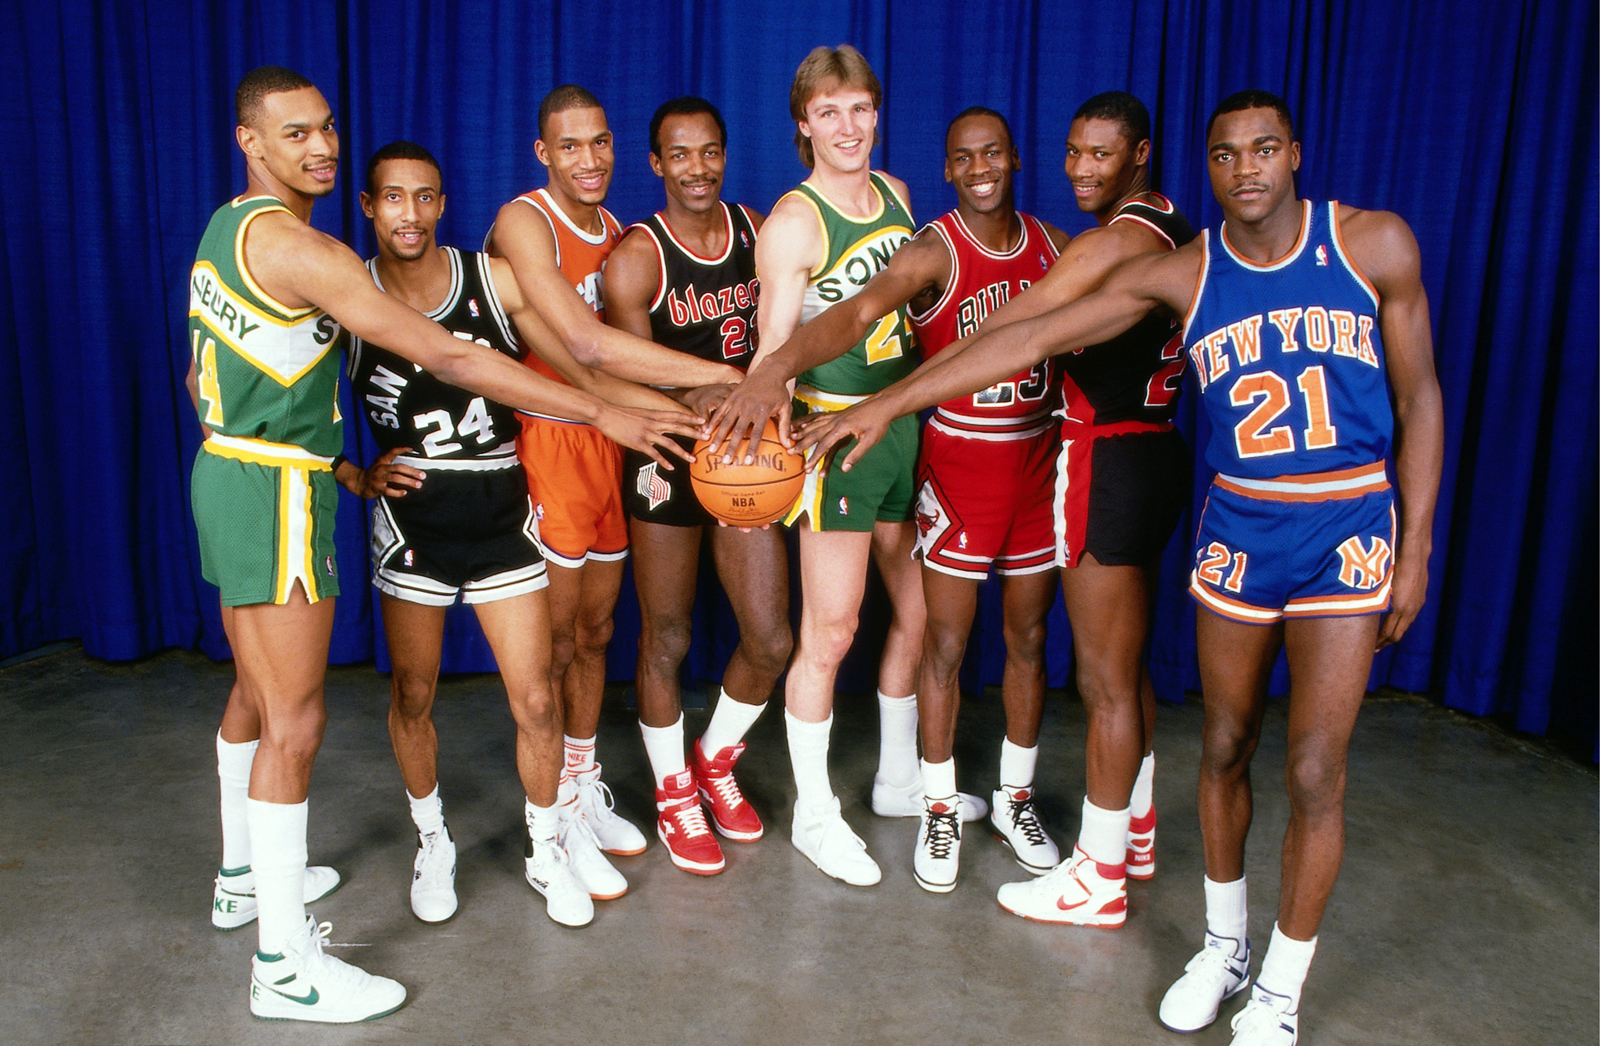 Michael Jordan (third from right) poses for a portrait prior to the 1987 Slam Dunk Contest.